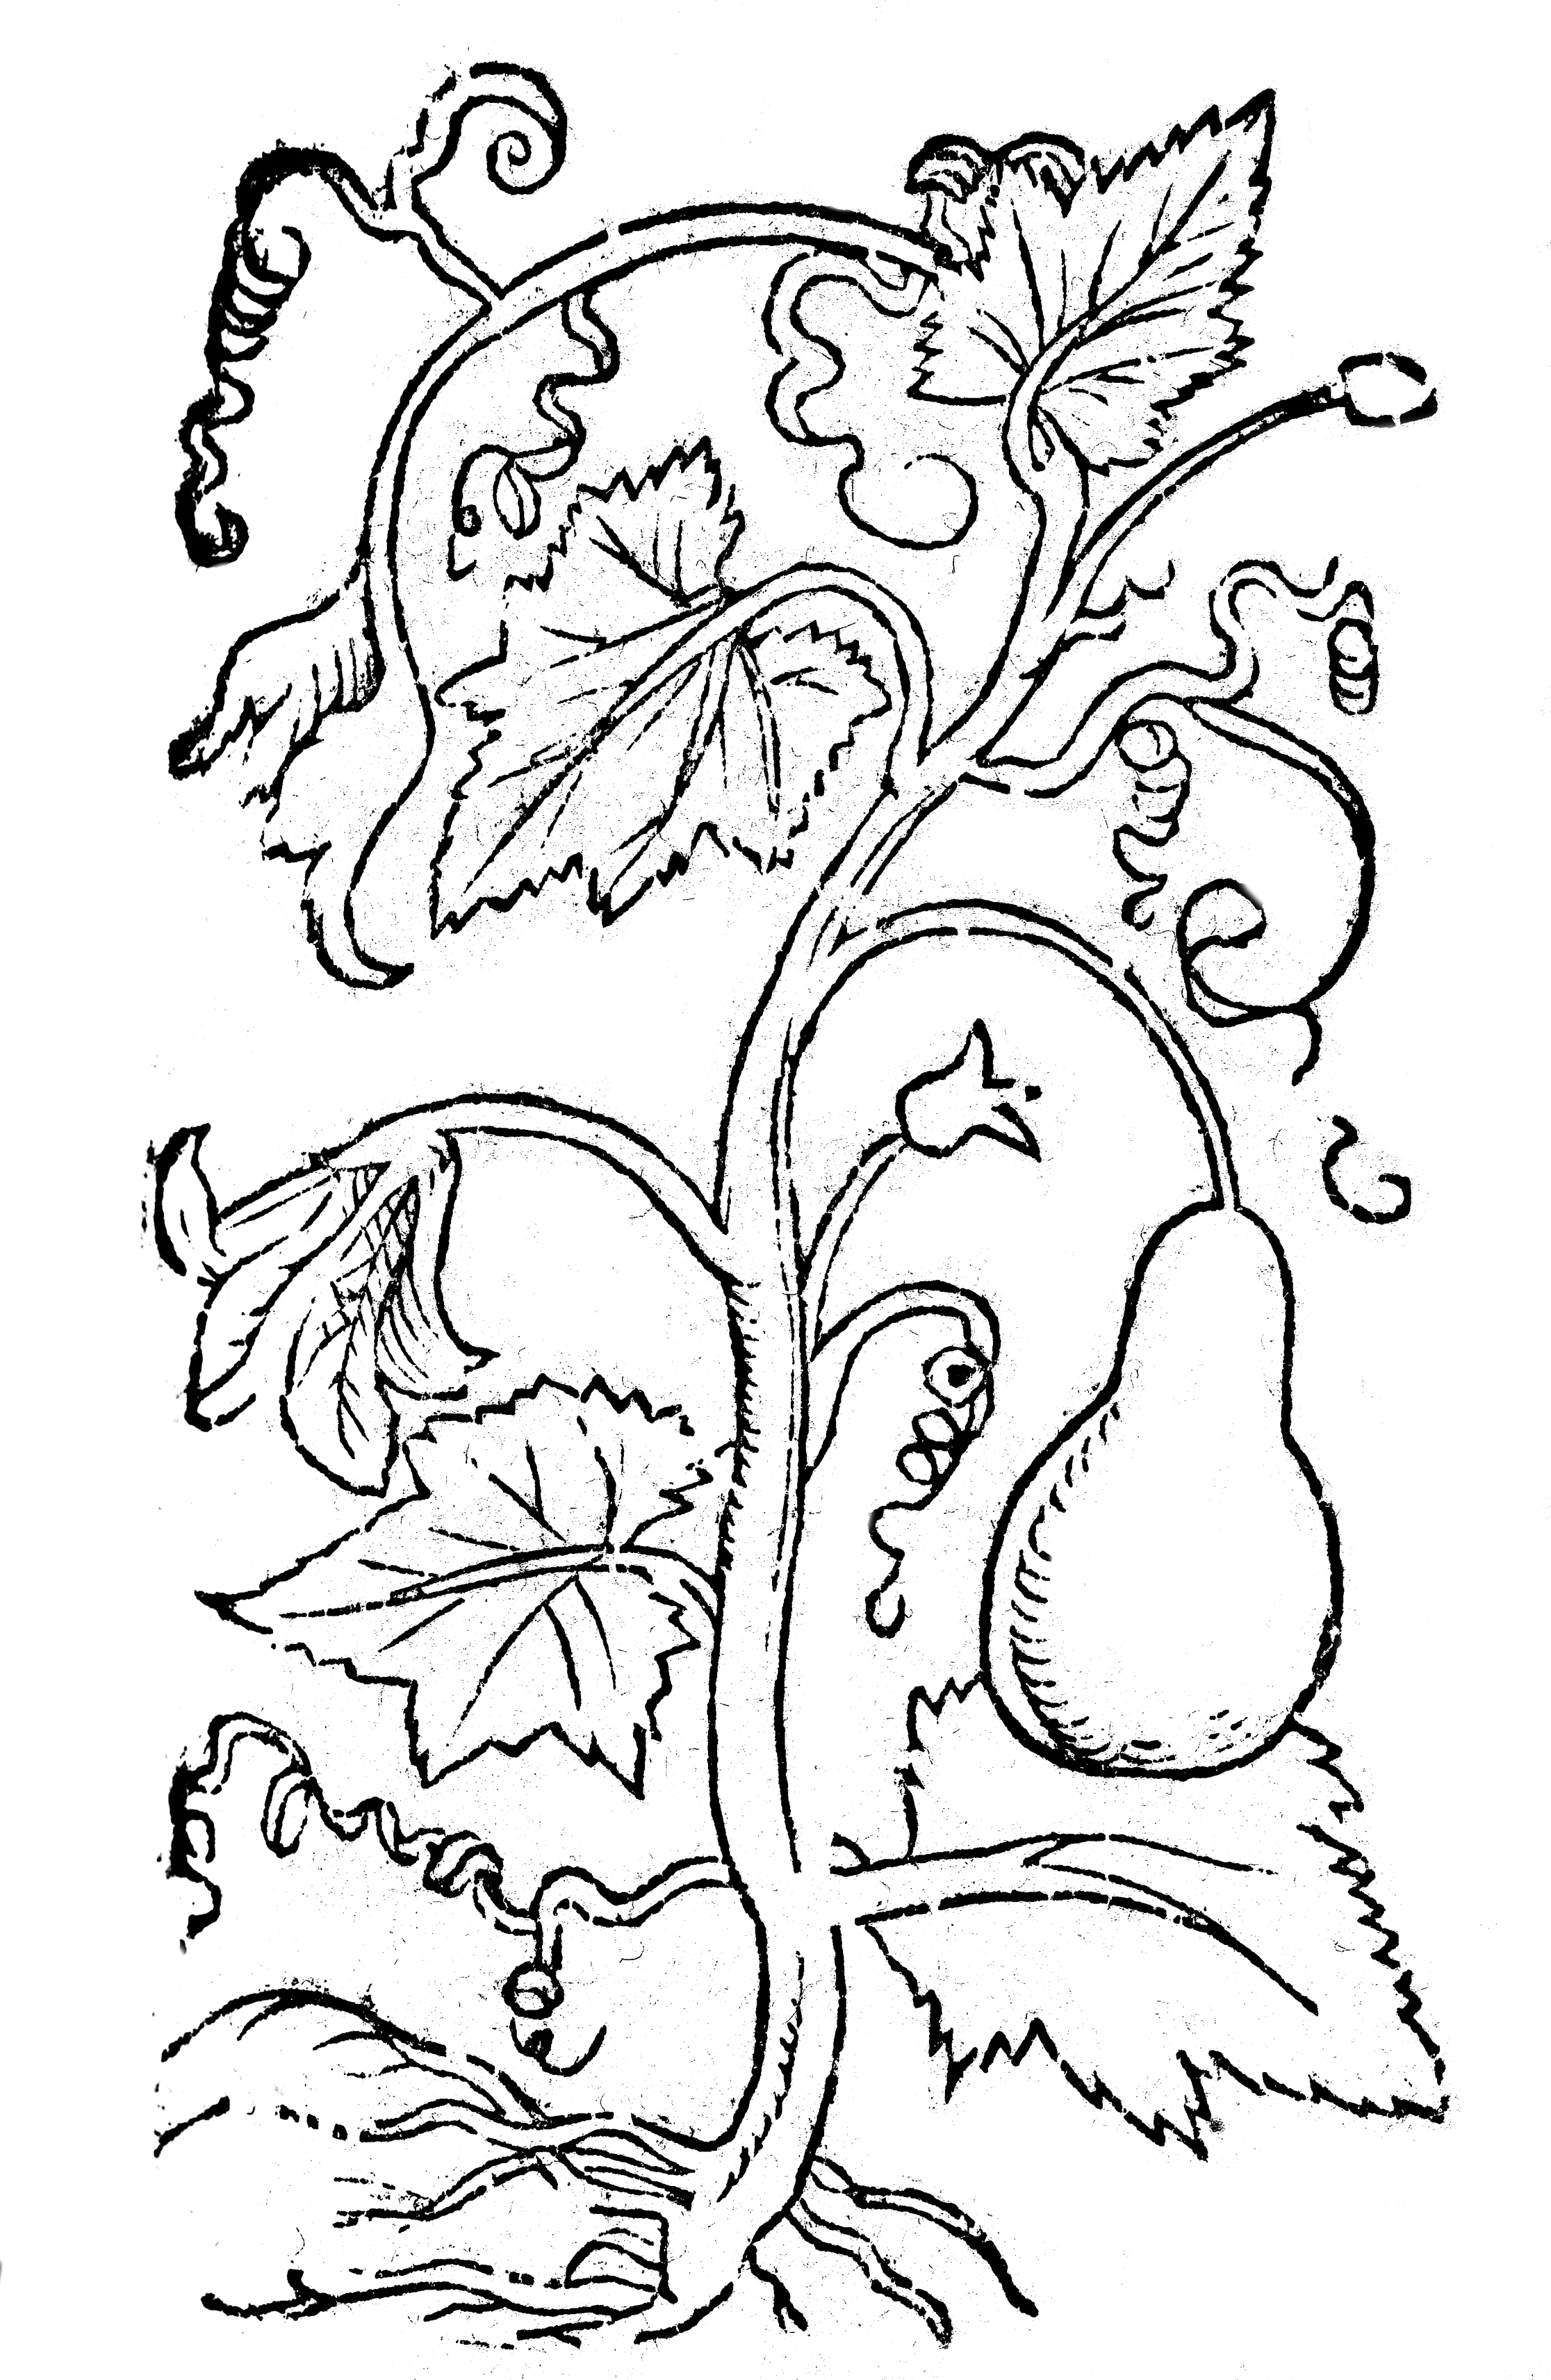 File:04 Zucca, Coloring Book BCT, 2017.jpg - Wikimedia Commons